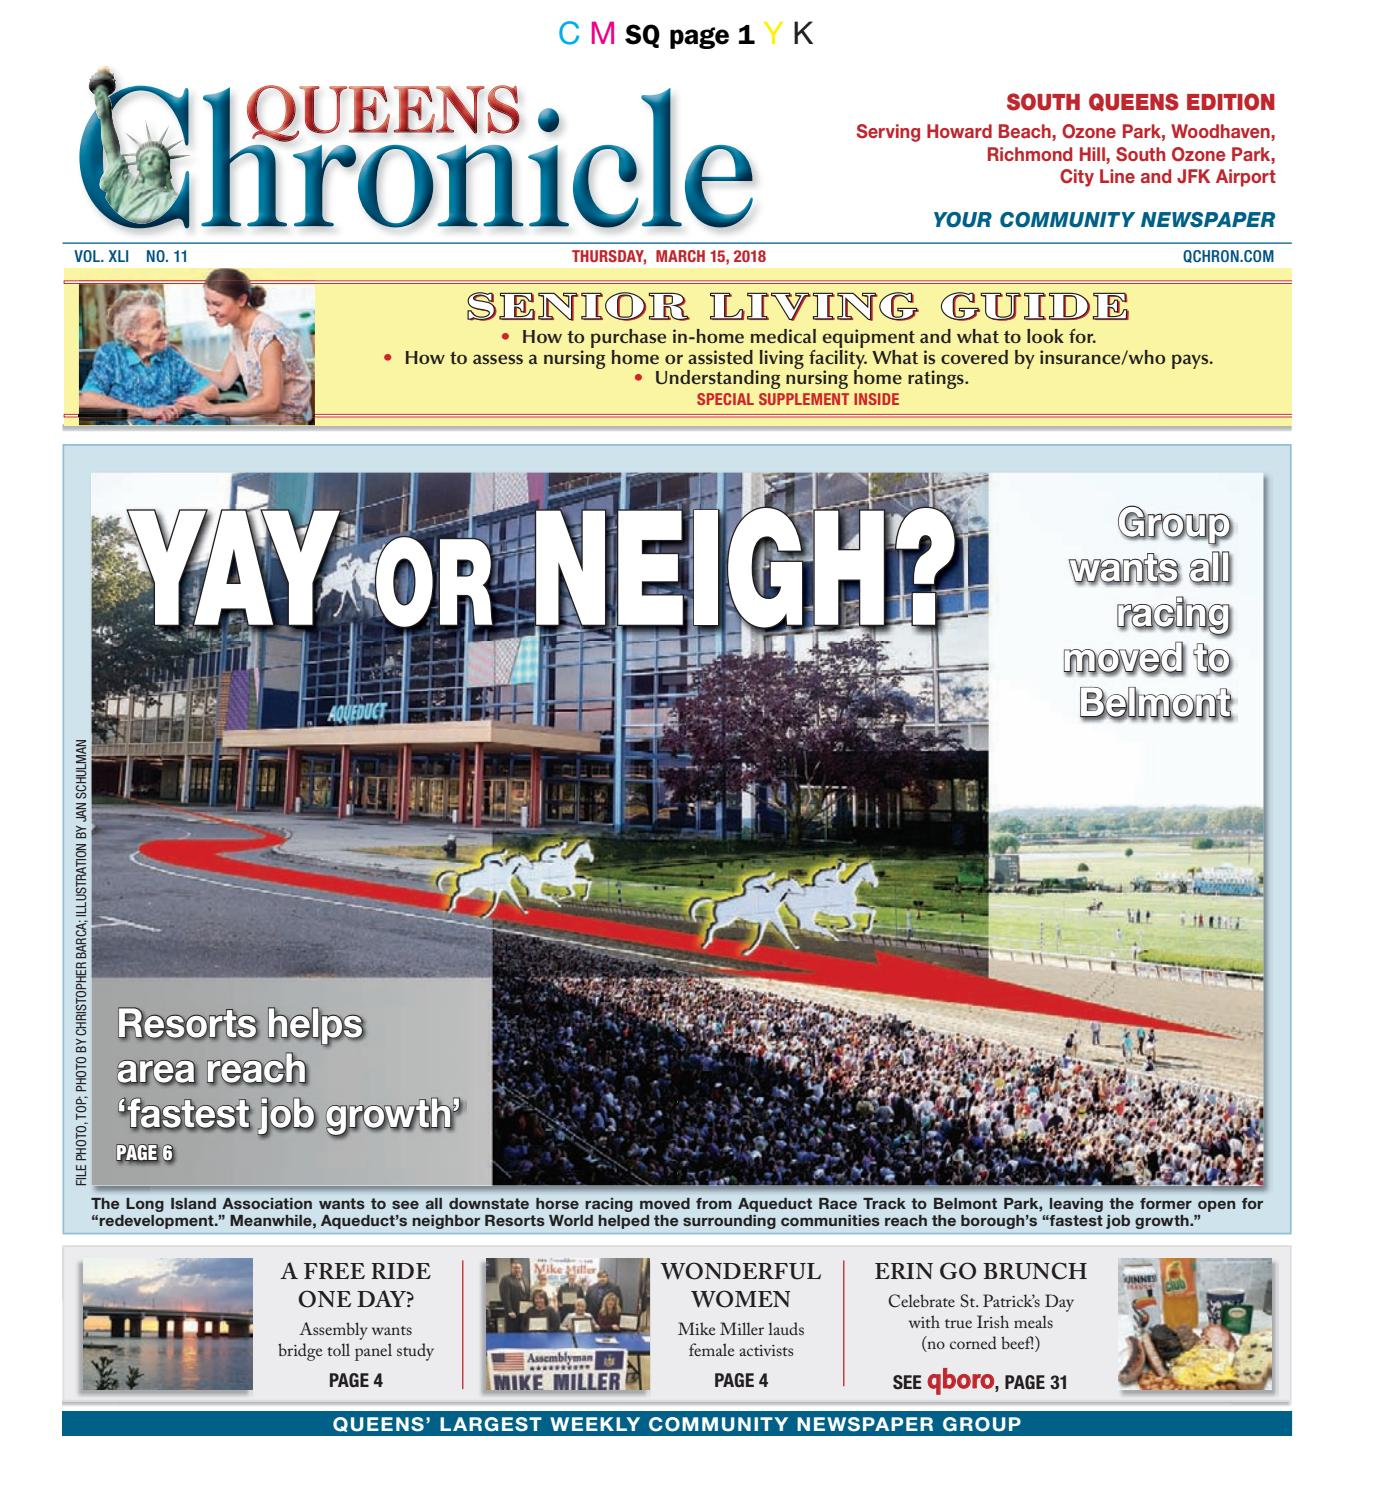 5606c5ecc06 Queens Chronicle South Edition 03-15-18 by Queens Chronicle - issuu